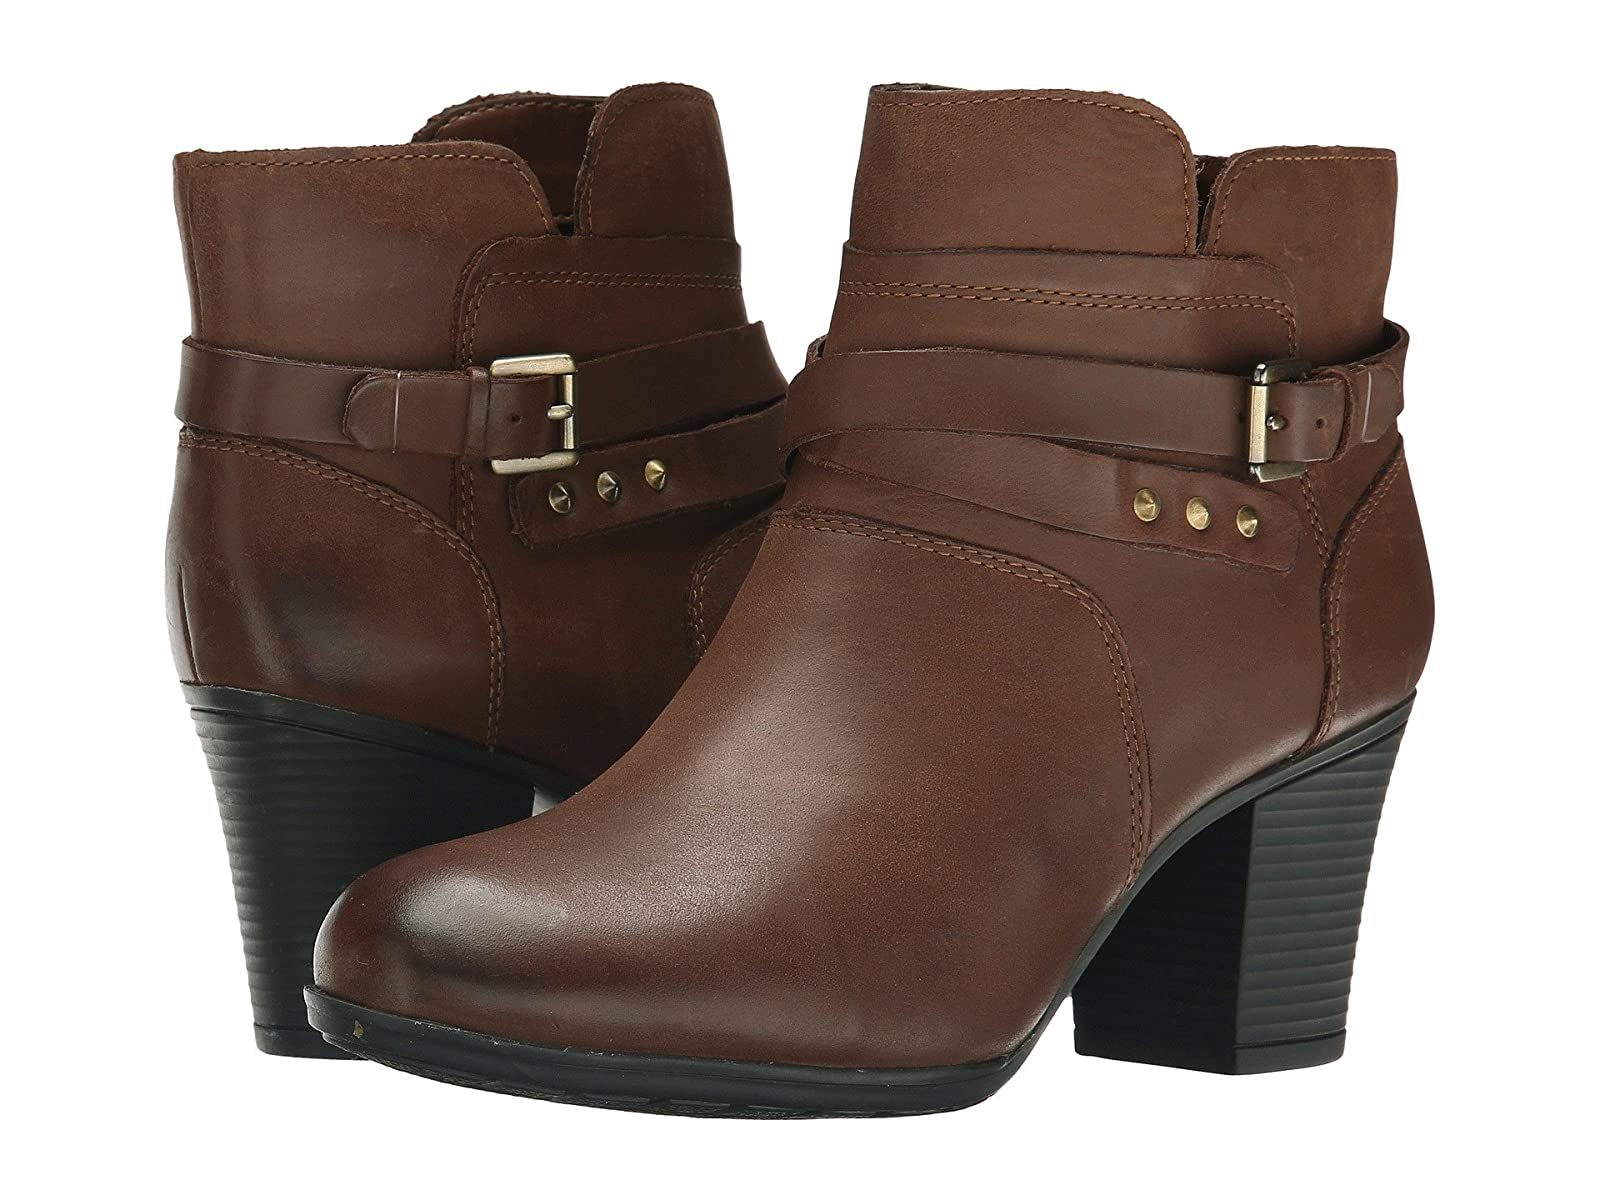 Rockport City Casuals Catriona Buckle BootieEconomical and quality shoes